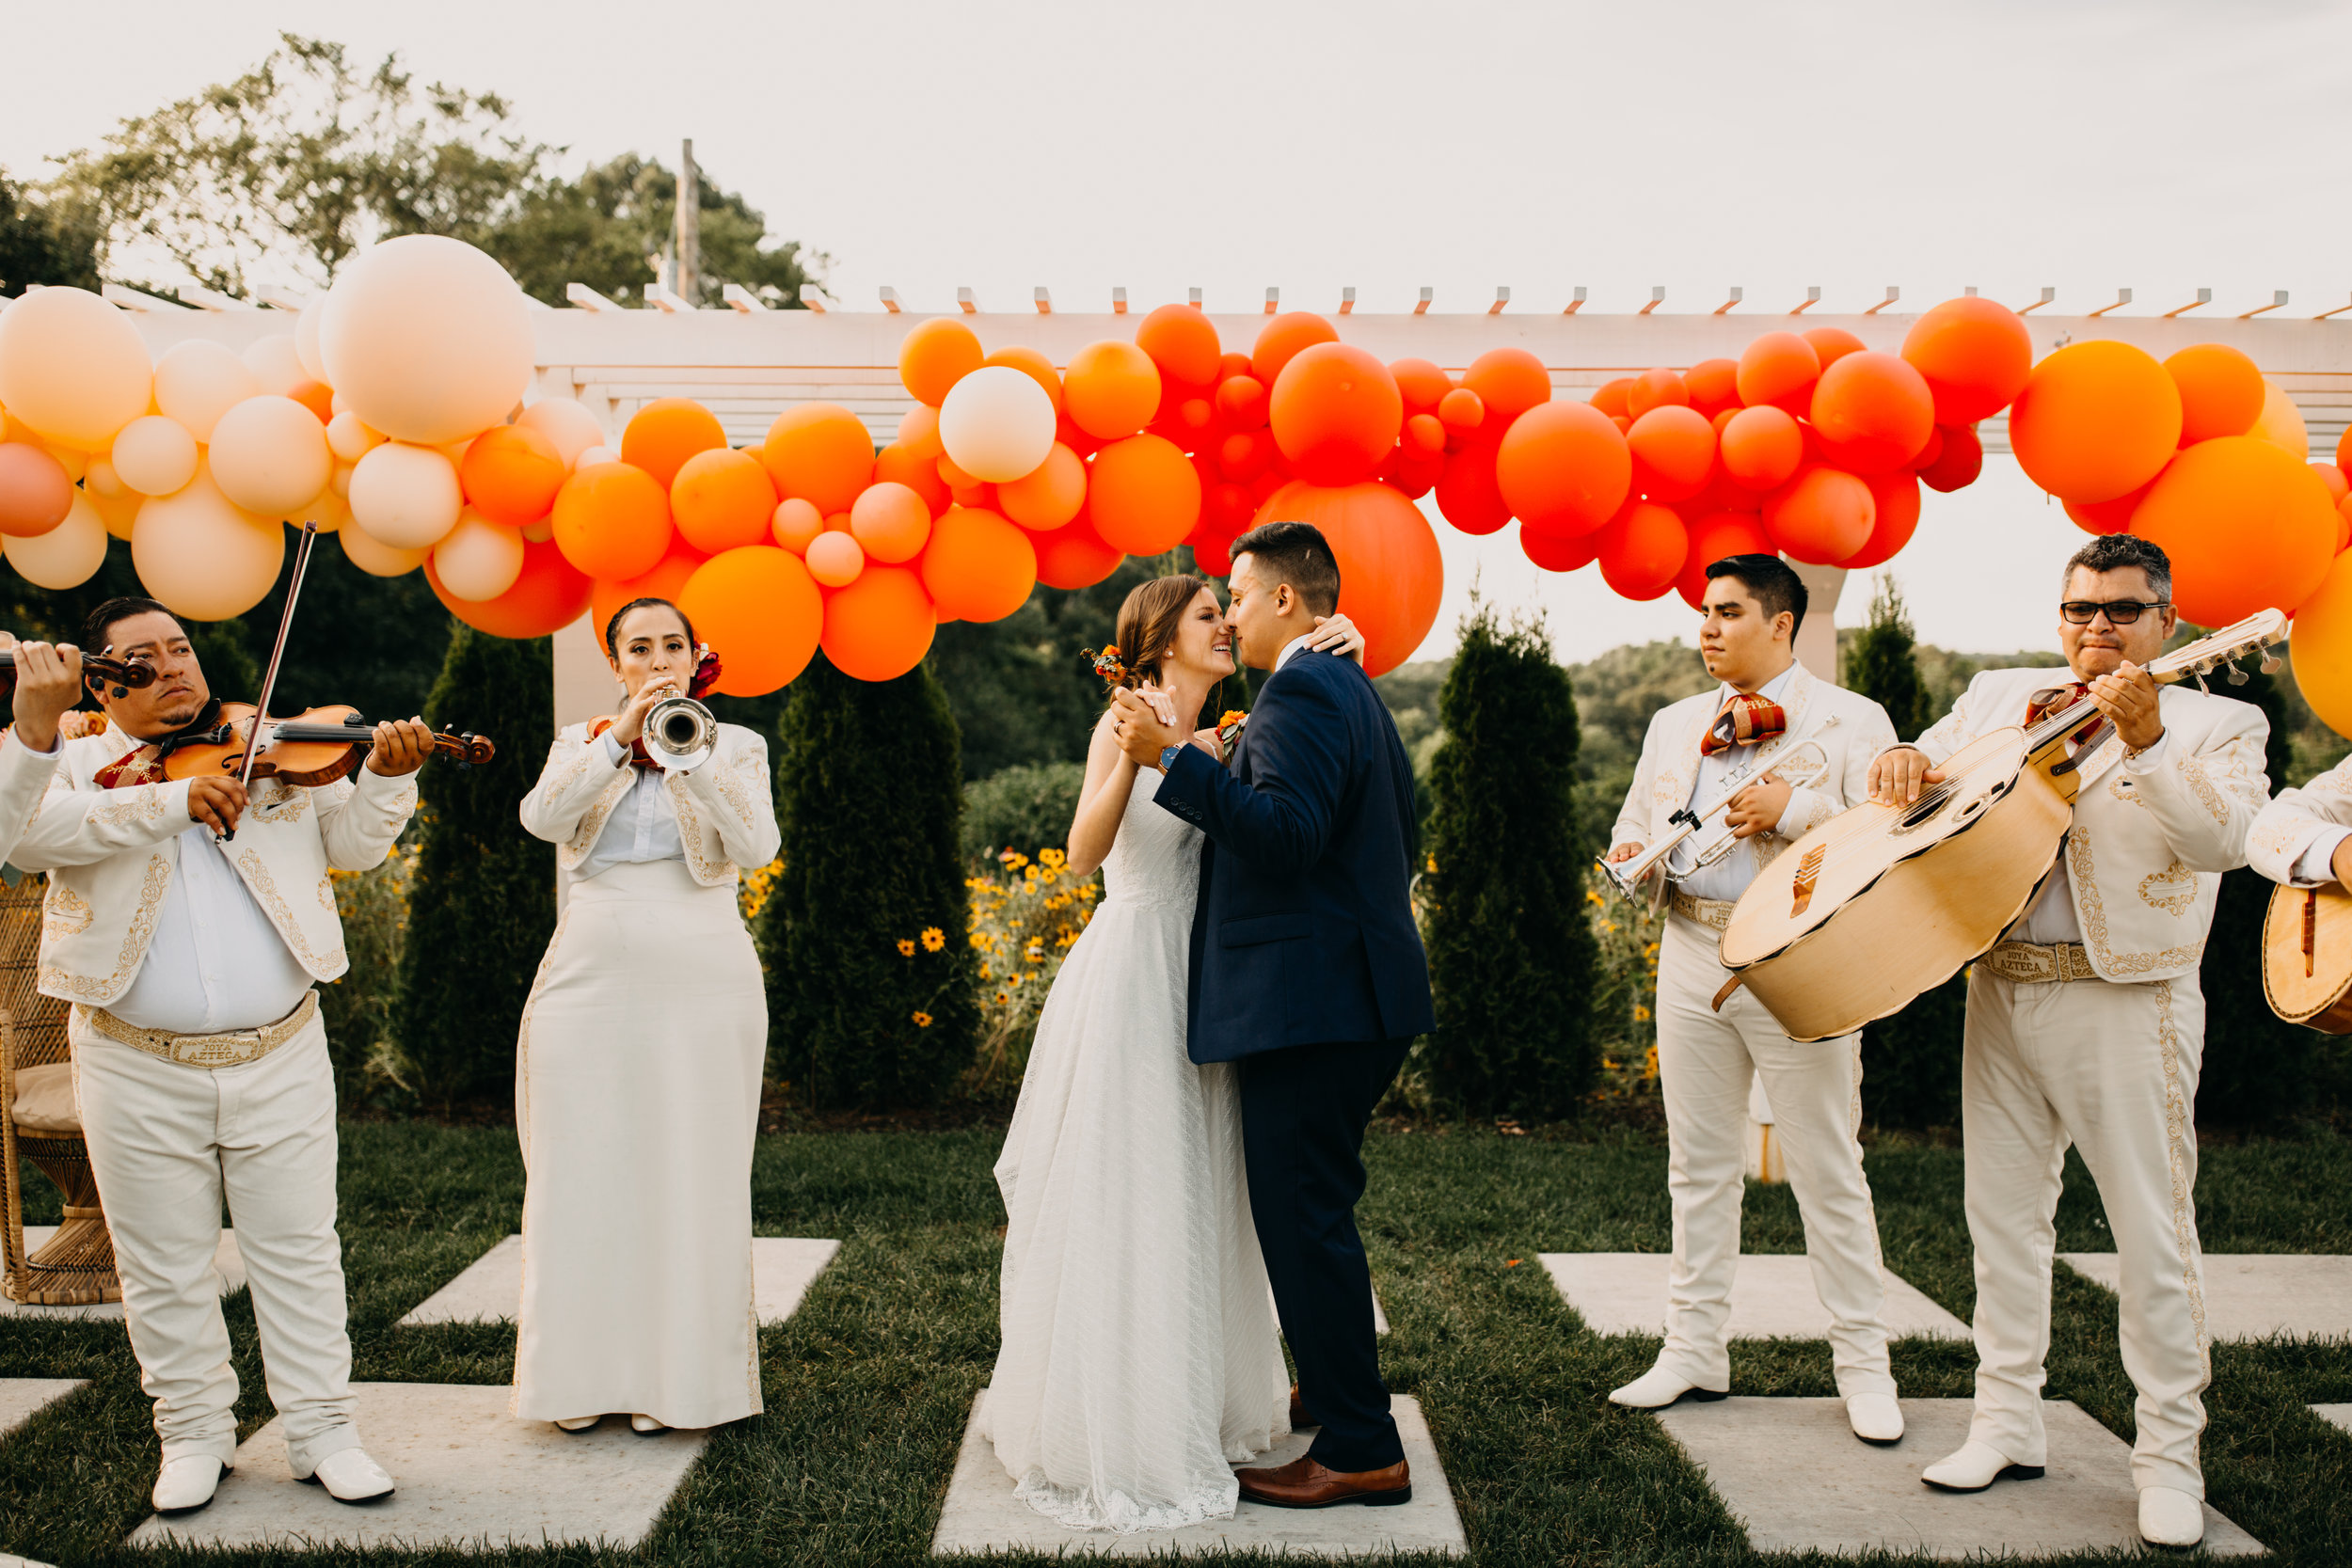 bride and groom in front of balloons and mariachi band